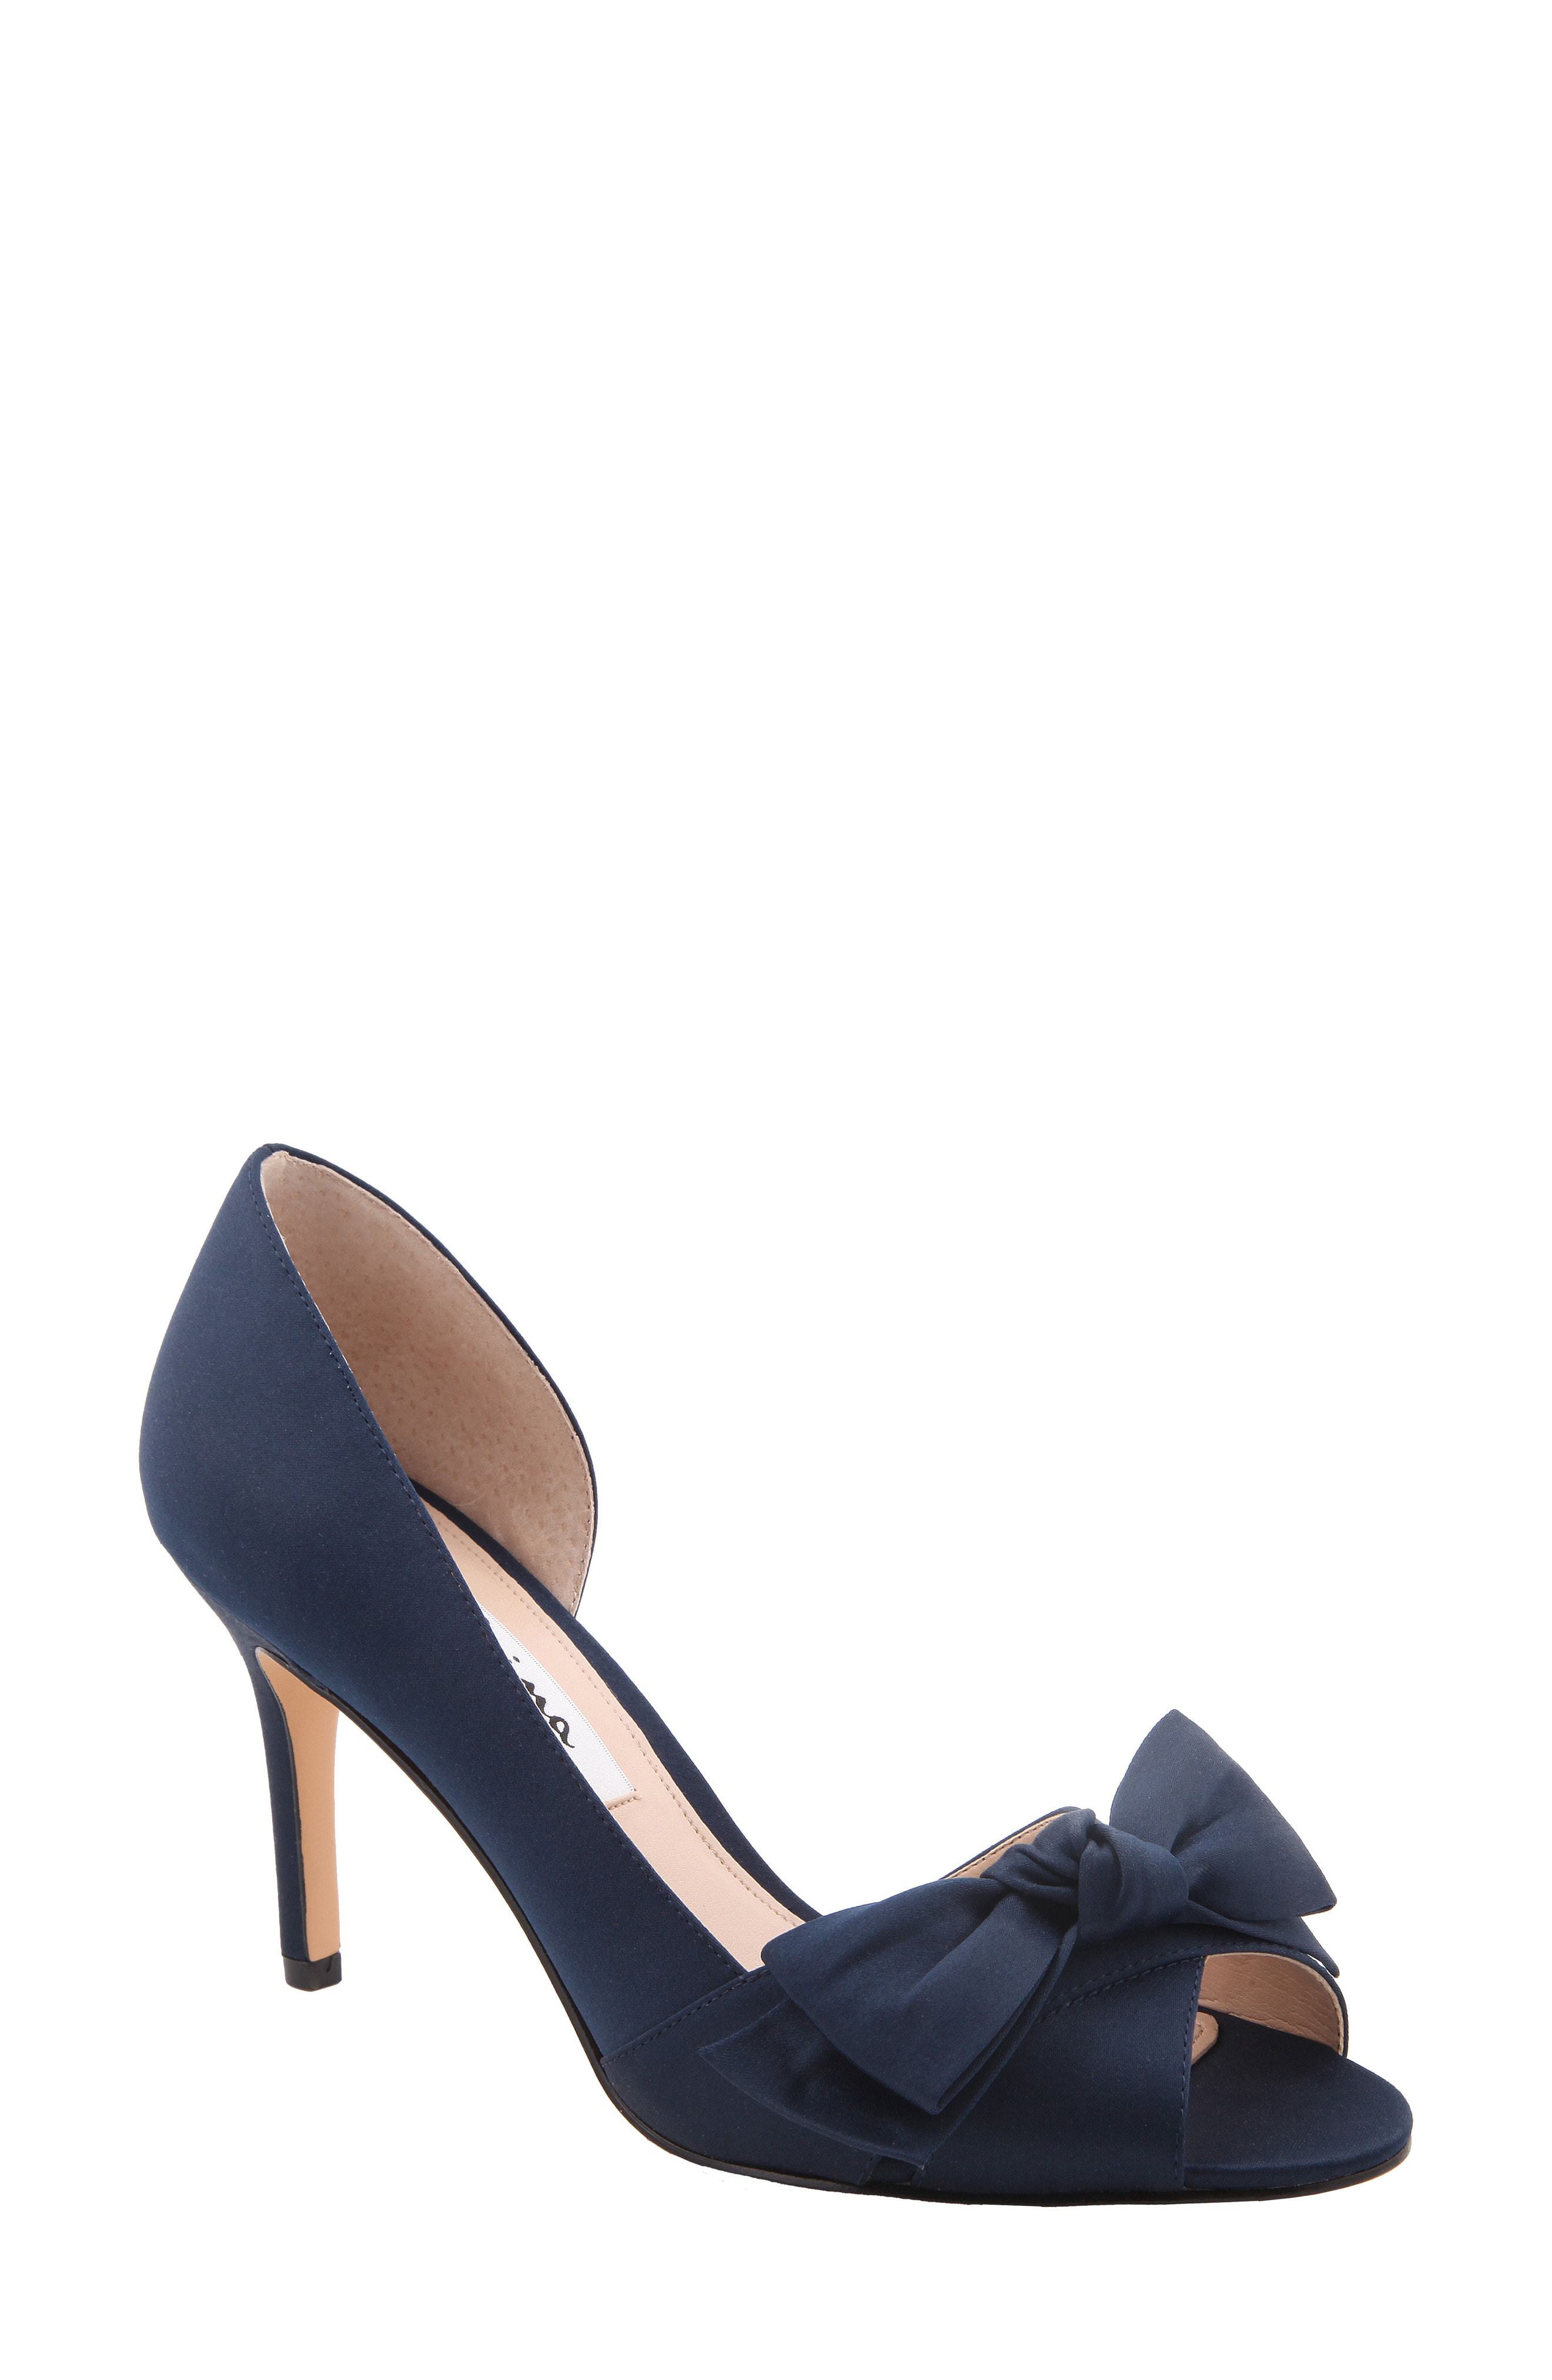 060d8c62adb77 Nina Forbes 2 Bow Peep-Toe D'Orsay Evening Pumps Women's Shoes In New